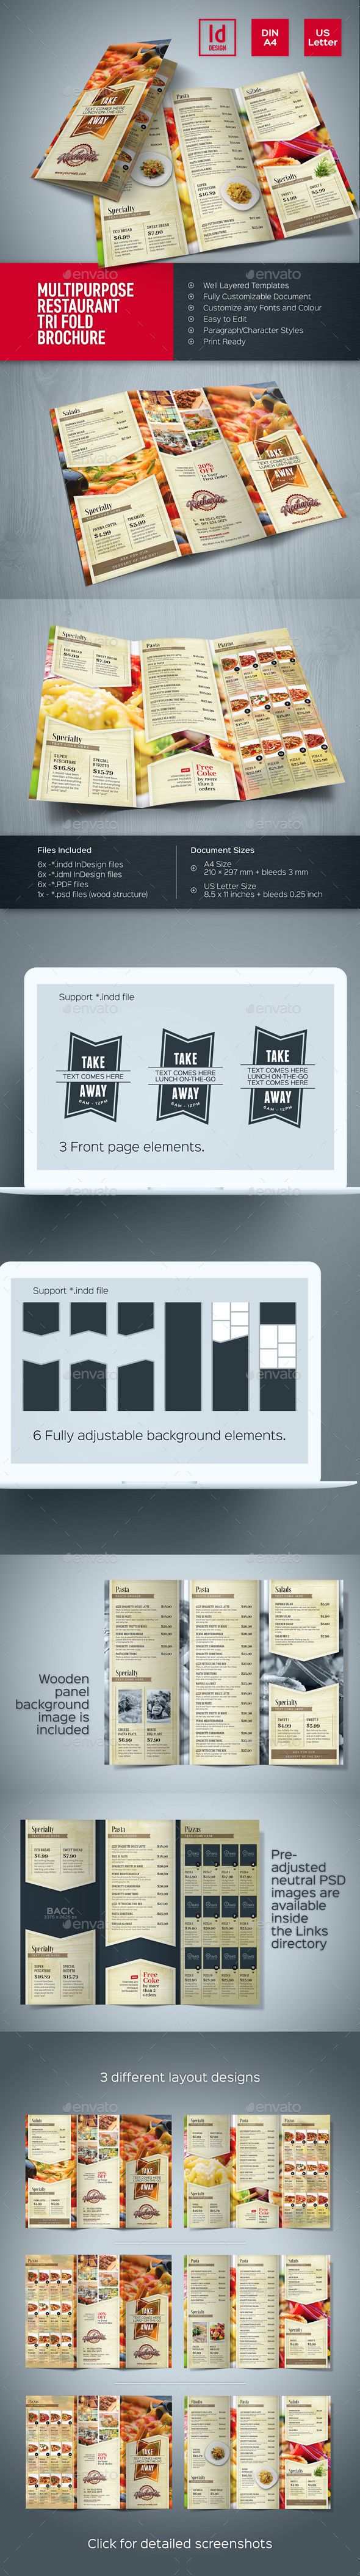 3 panel poster board designs - 25 Best Tri Fold Poster Ideas On Pinterest Tri Fold Poster Board Poster Board Ideas And Science Fair Board Layout